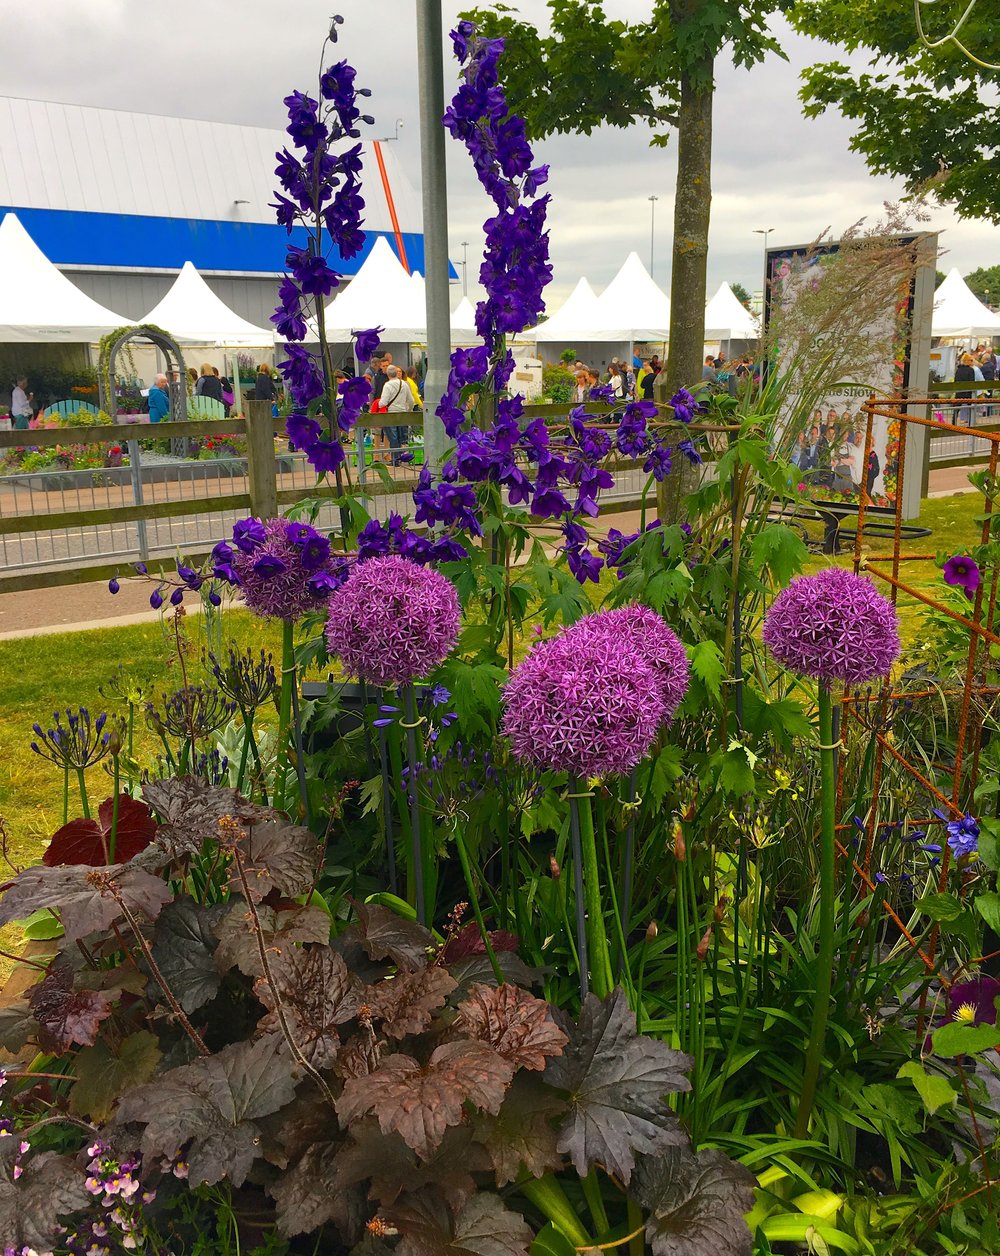 Alliums in flower and a hint of purple